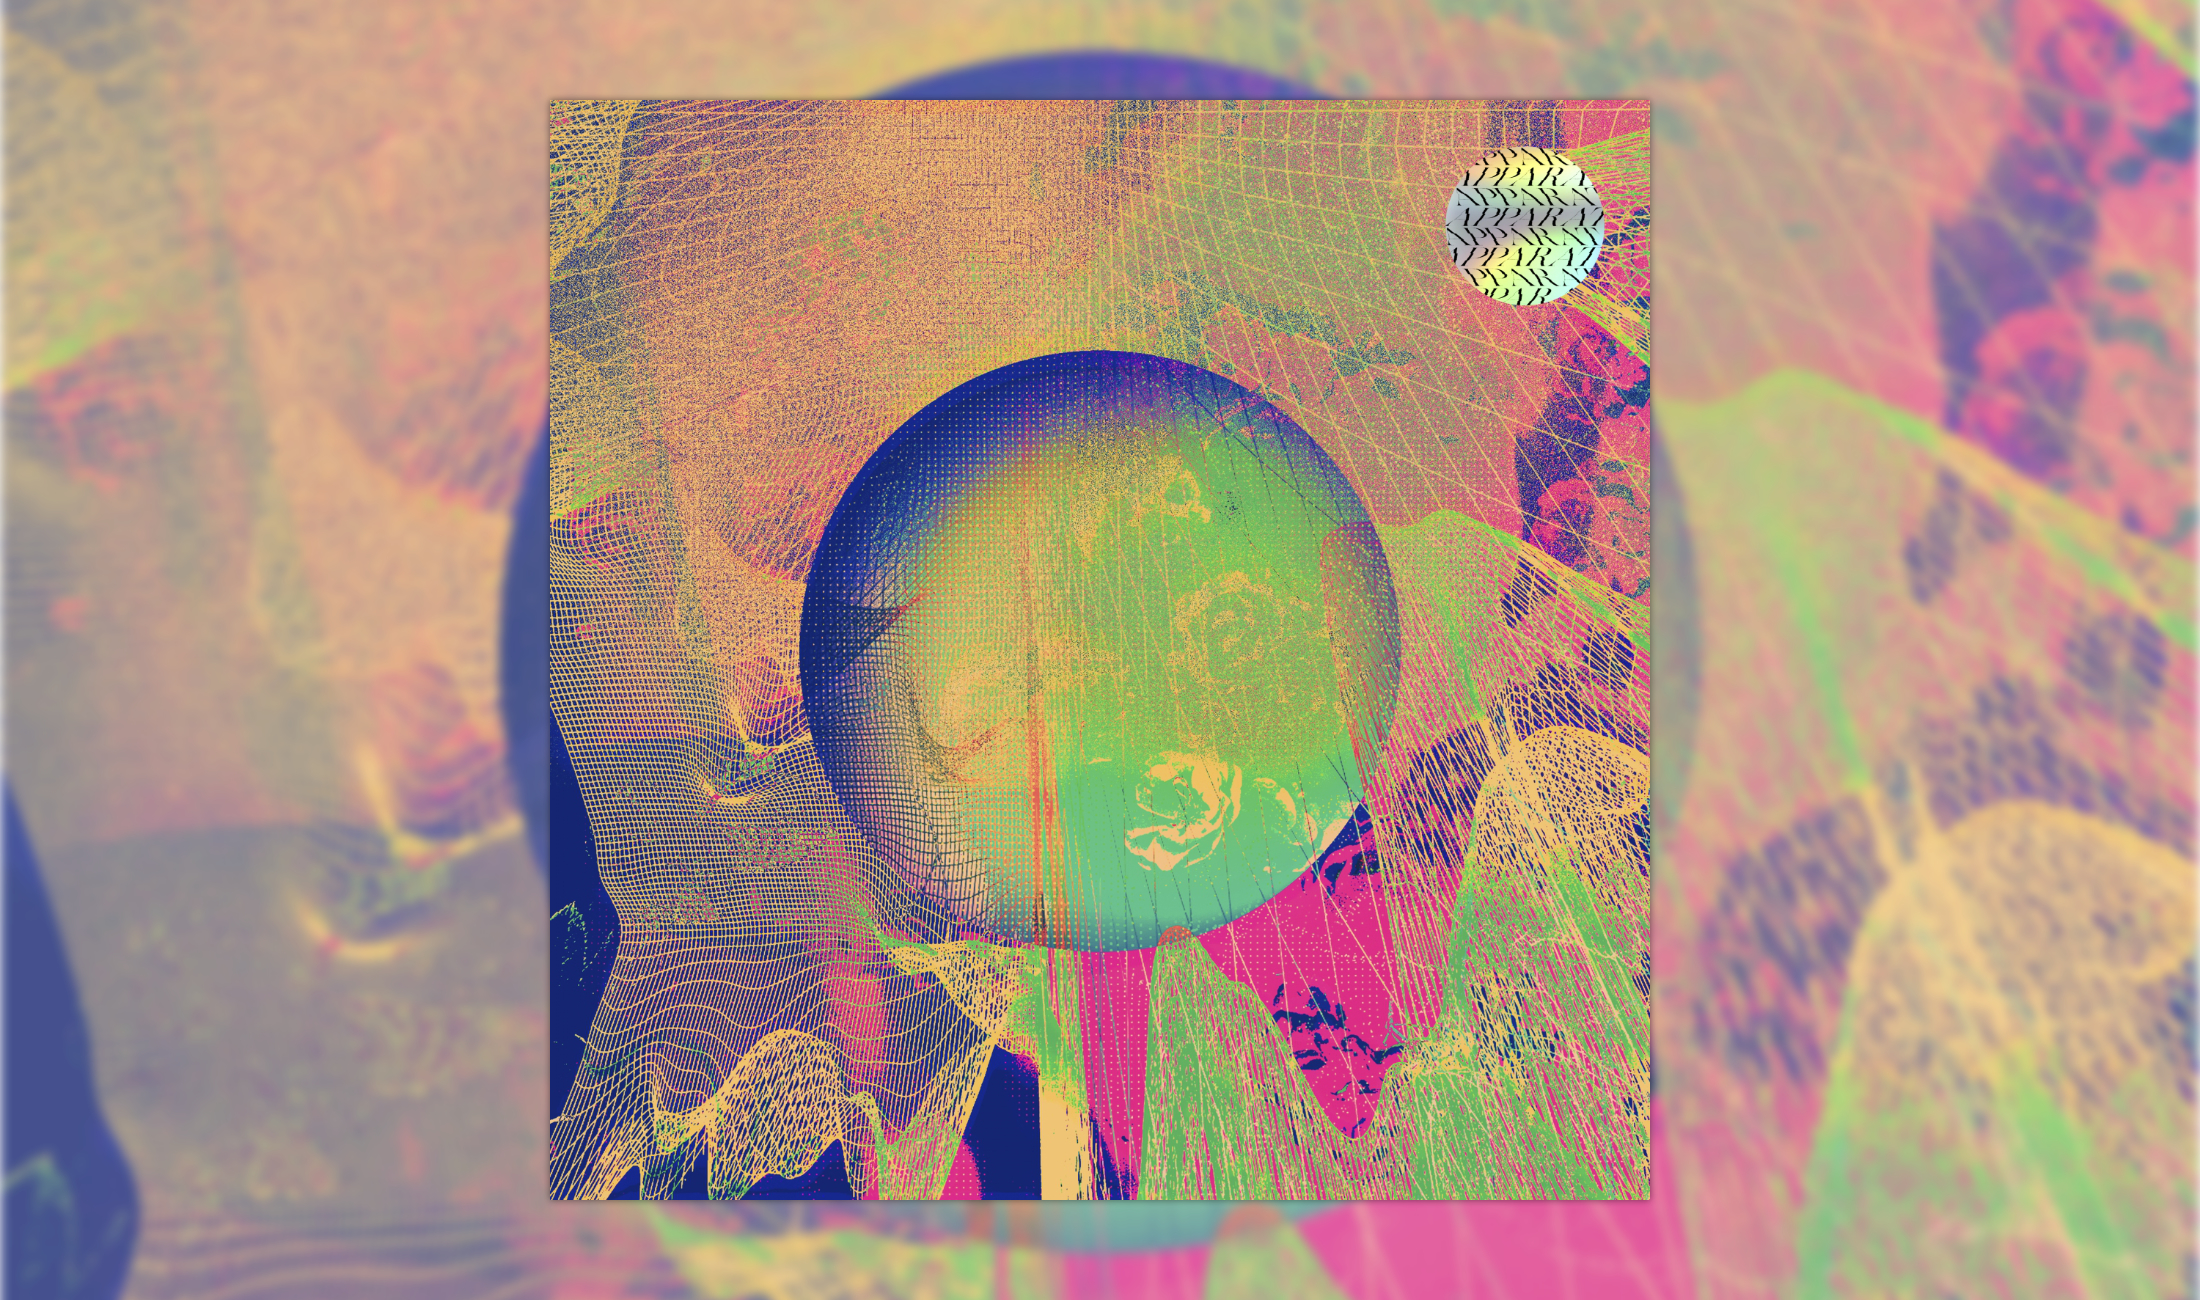 Review: Apparat – LP5 [Mute]